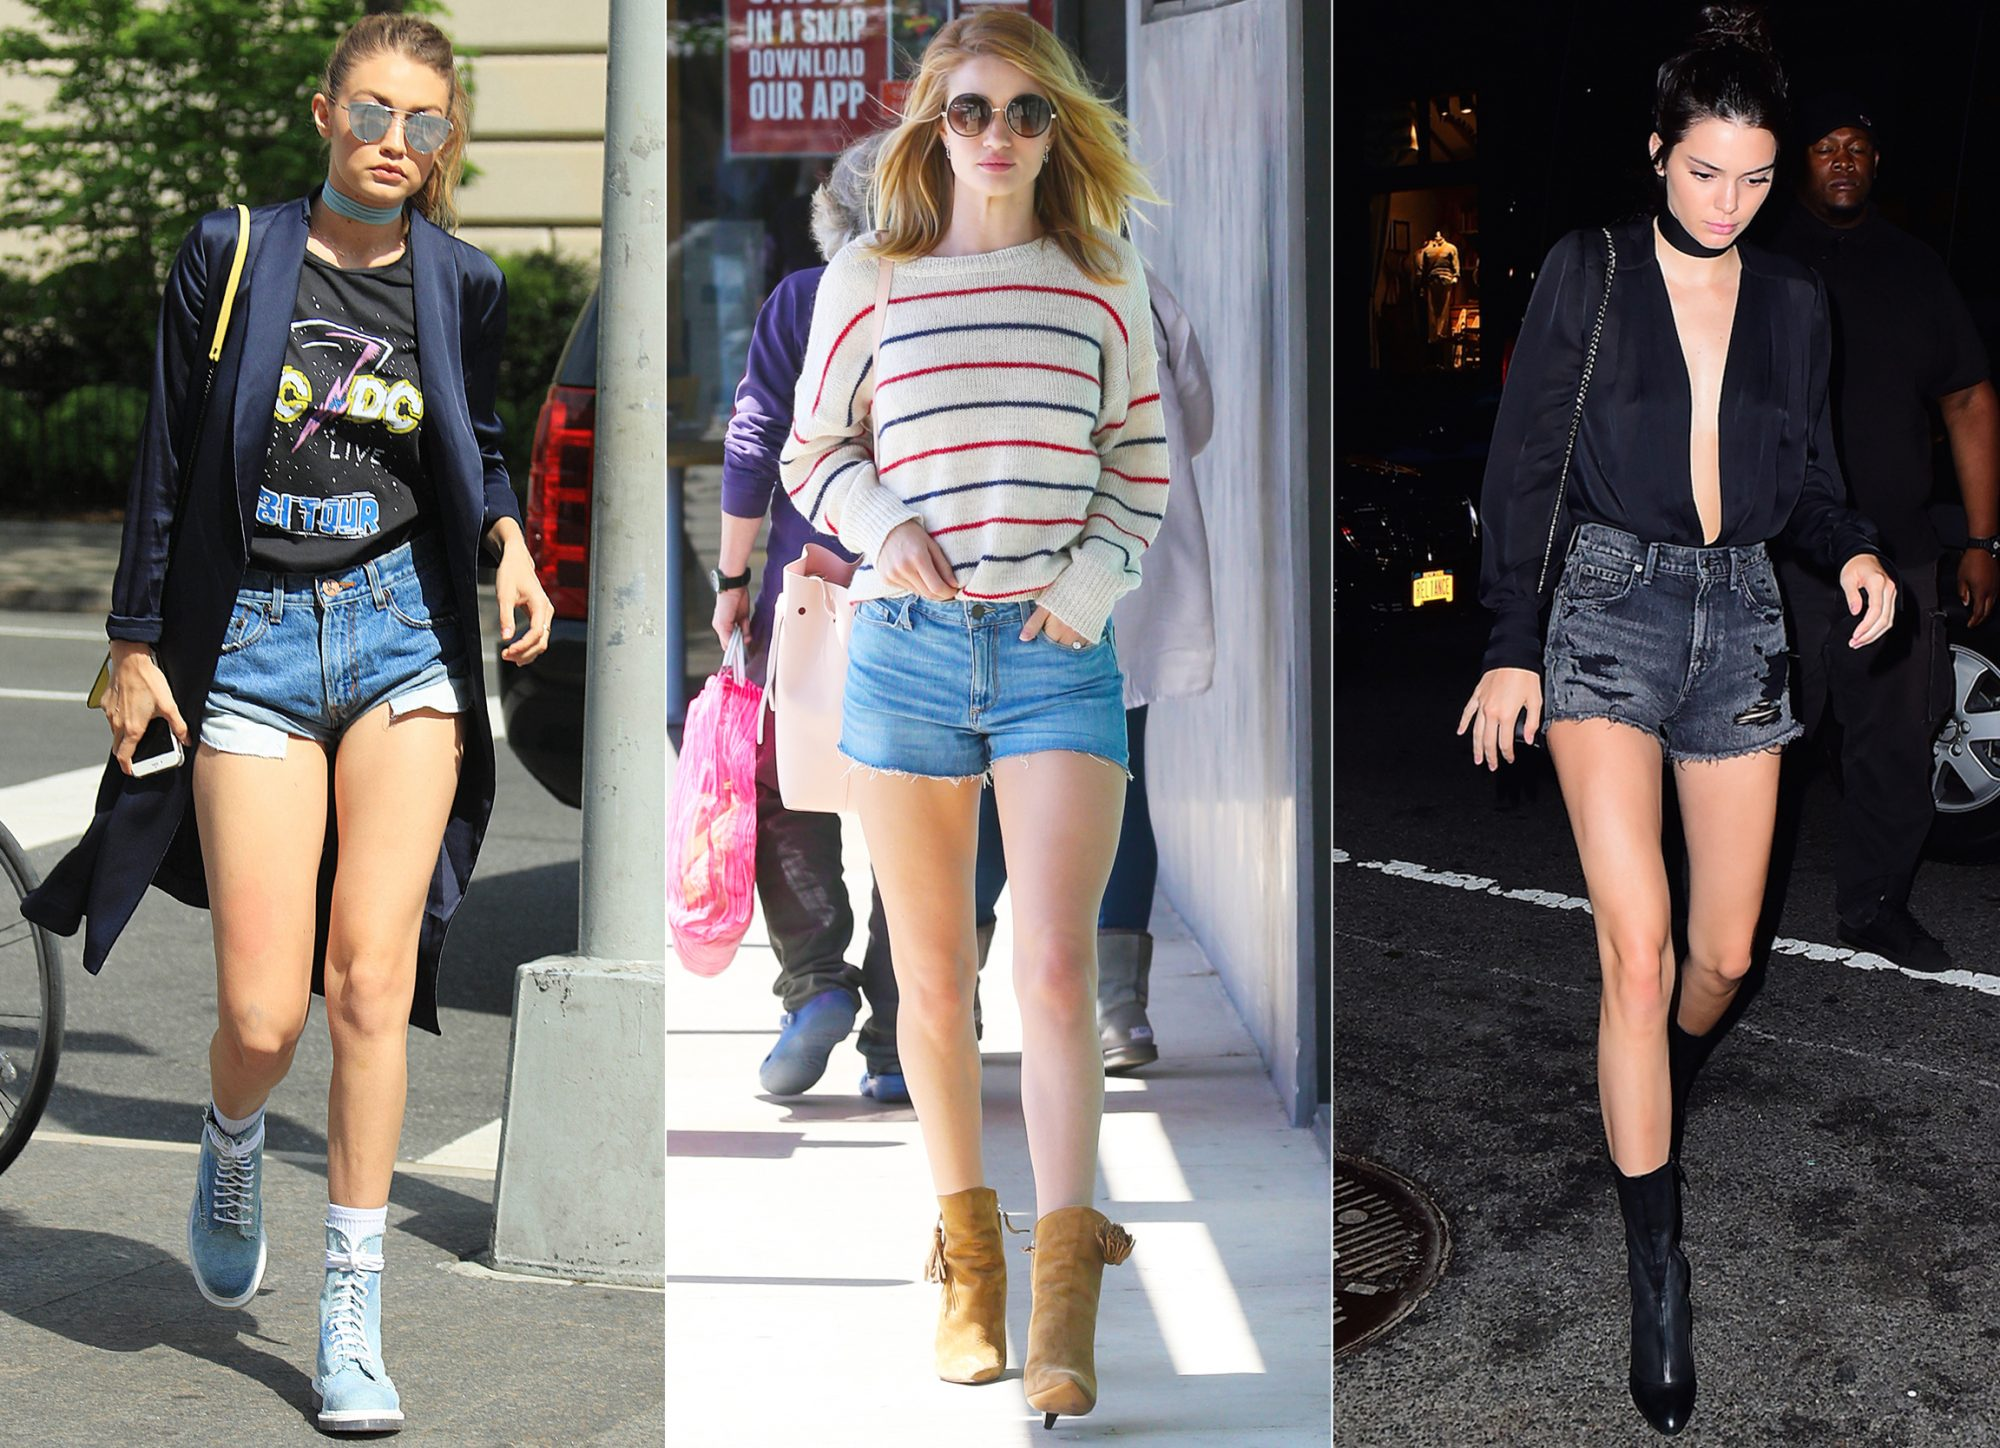 Fashion: 2010 Trends That Are Not Missed